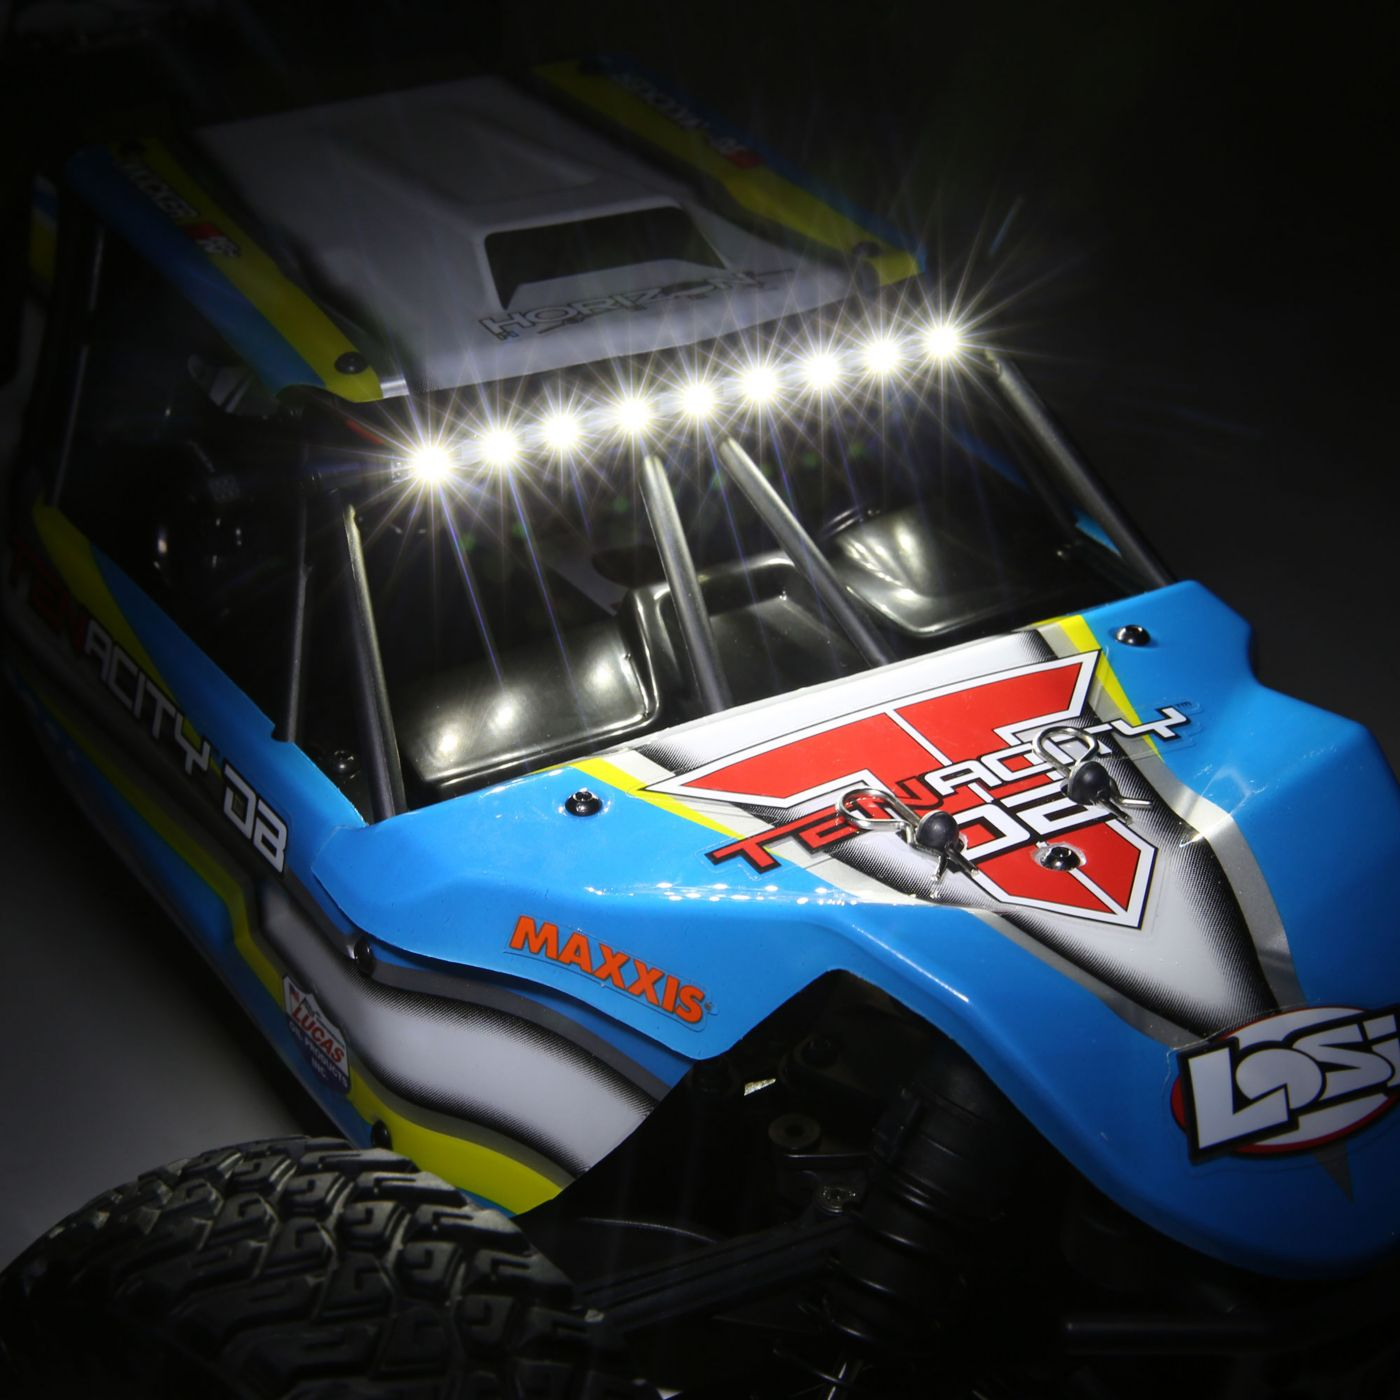 Losi Tenacity 4wd buggy rtr brushless rtr blue 7